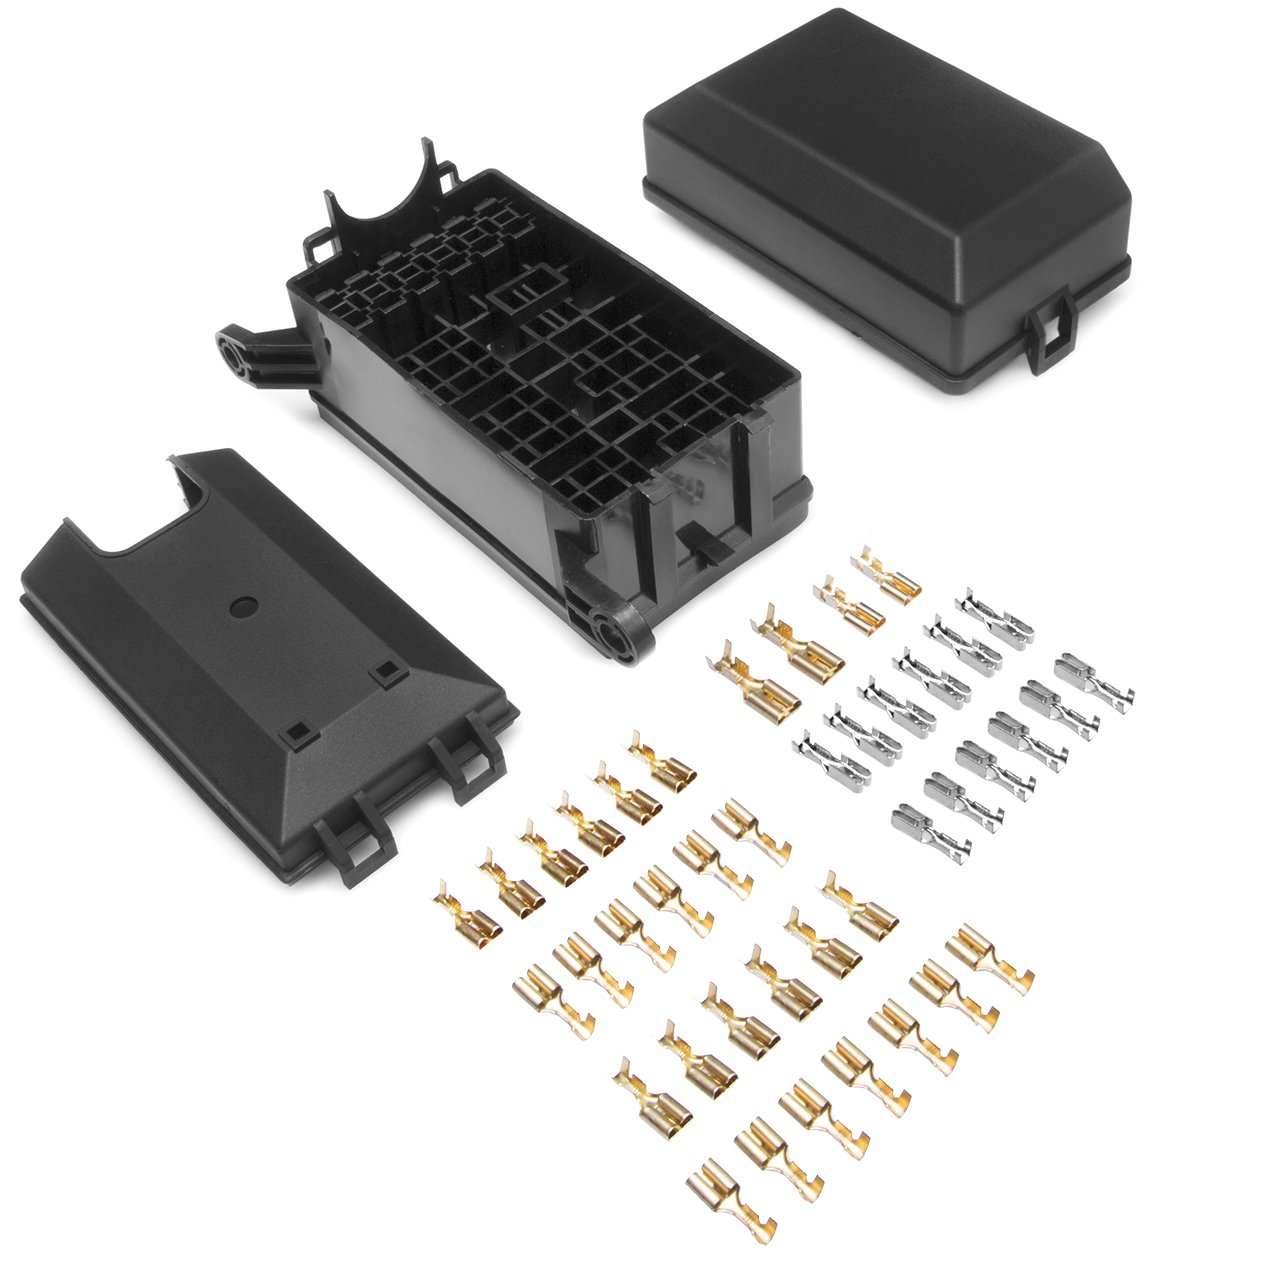 Relay Box 4-Slot 1 Relays /& 3 Fuses Holder Block with Metallic Pins for Automotive and Marine Engine Bay